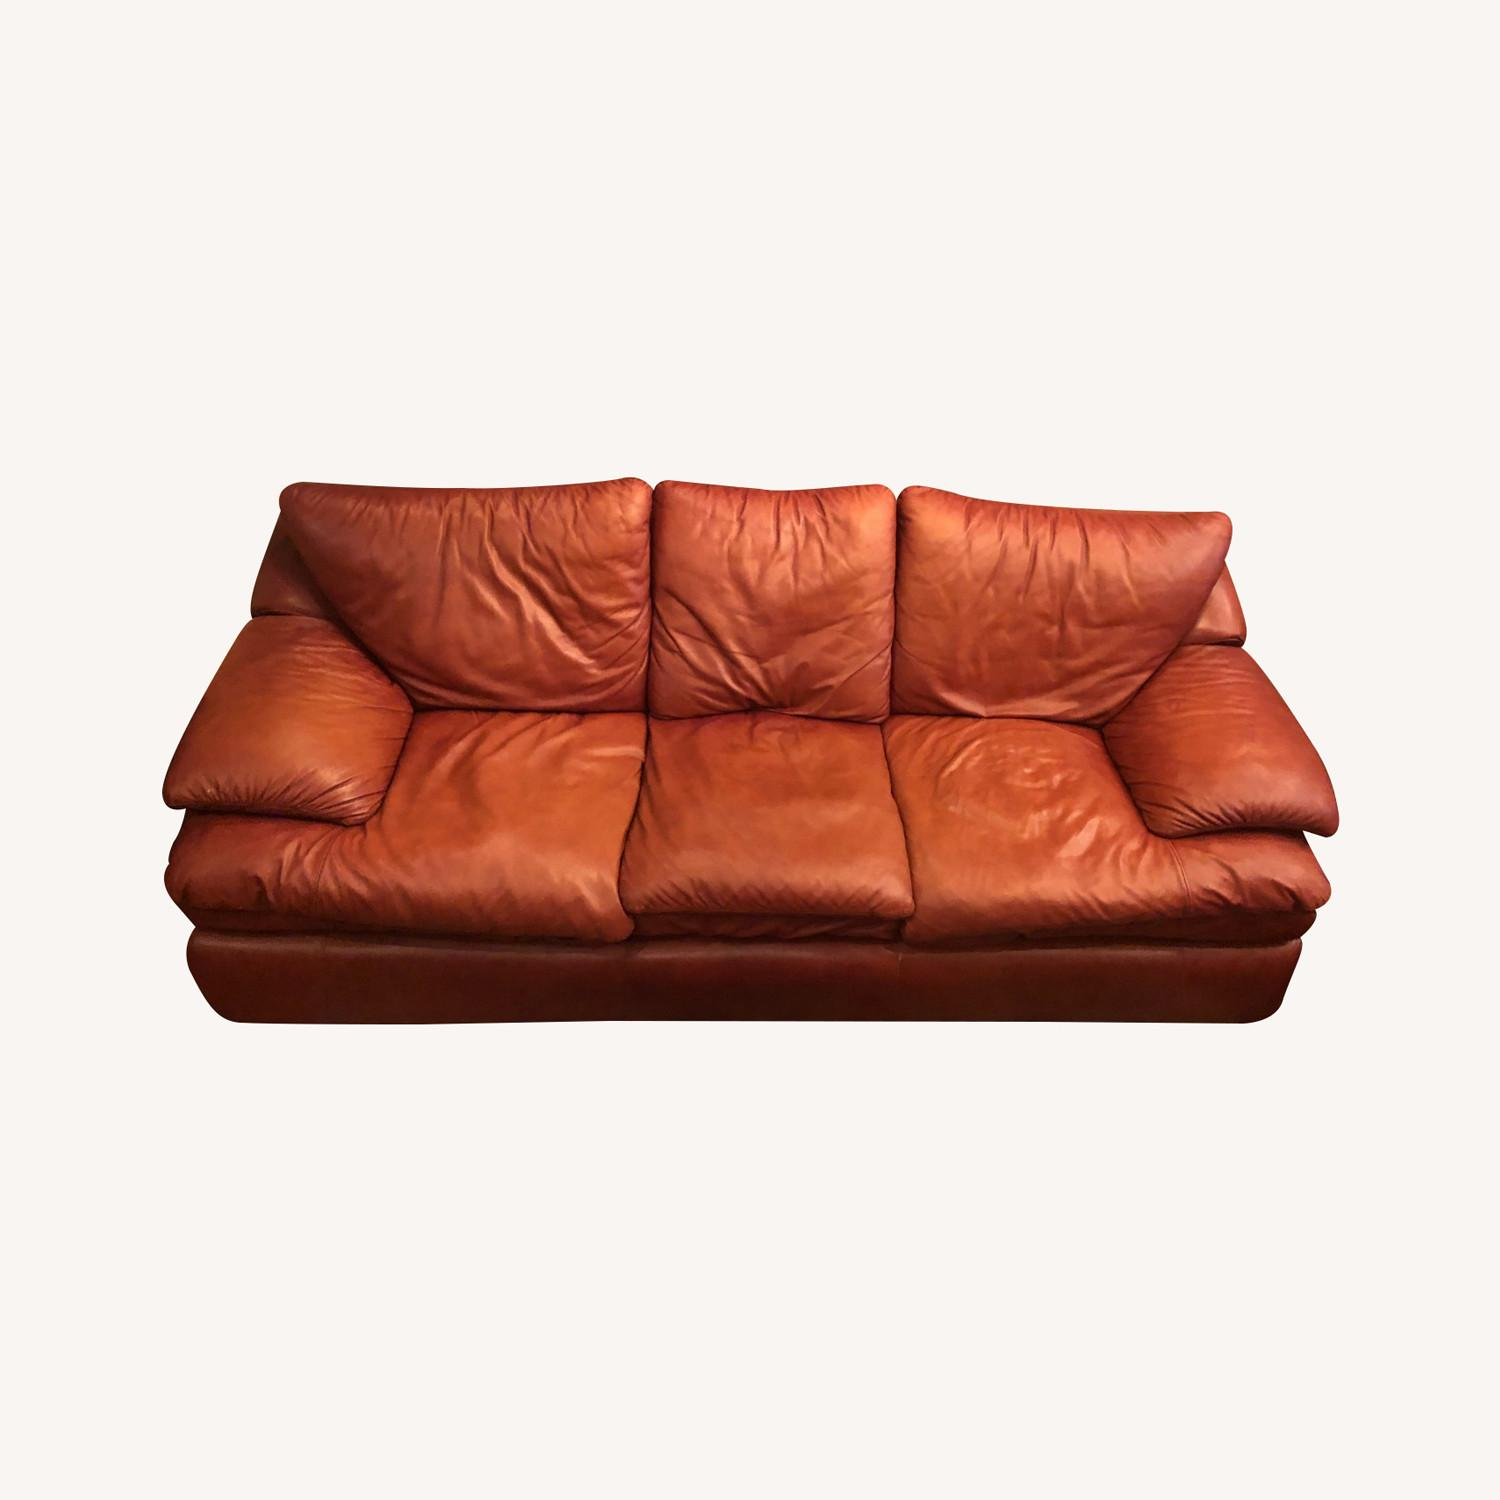 Brown Leather Livingston Sofa Bed - image-0